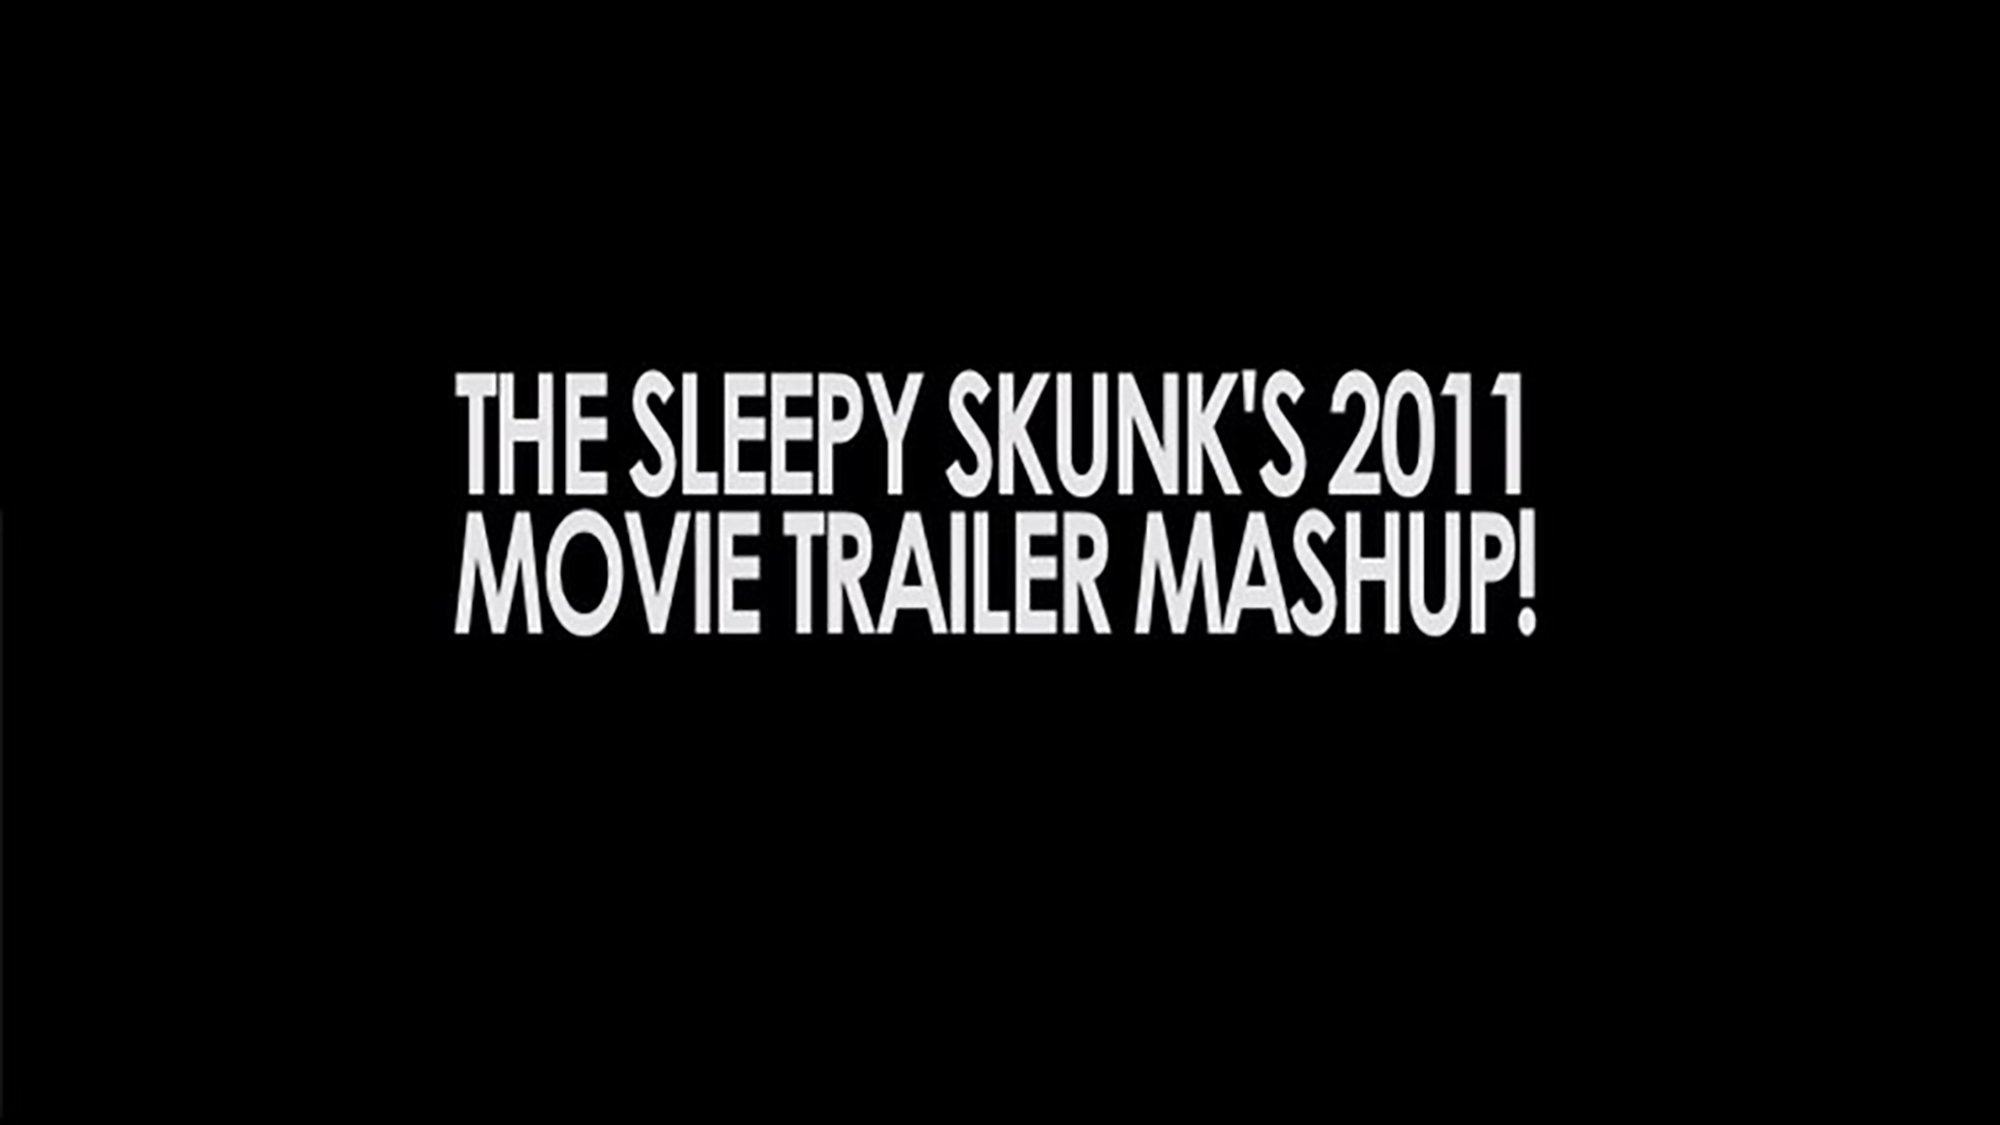 movie_trailer_mashup_2011_03